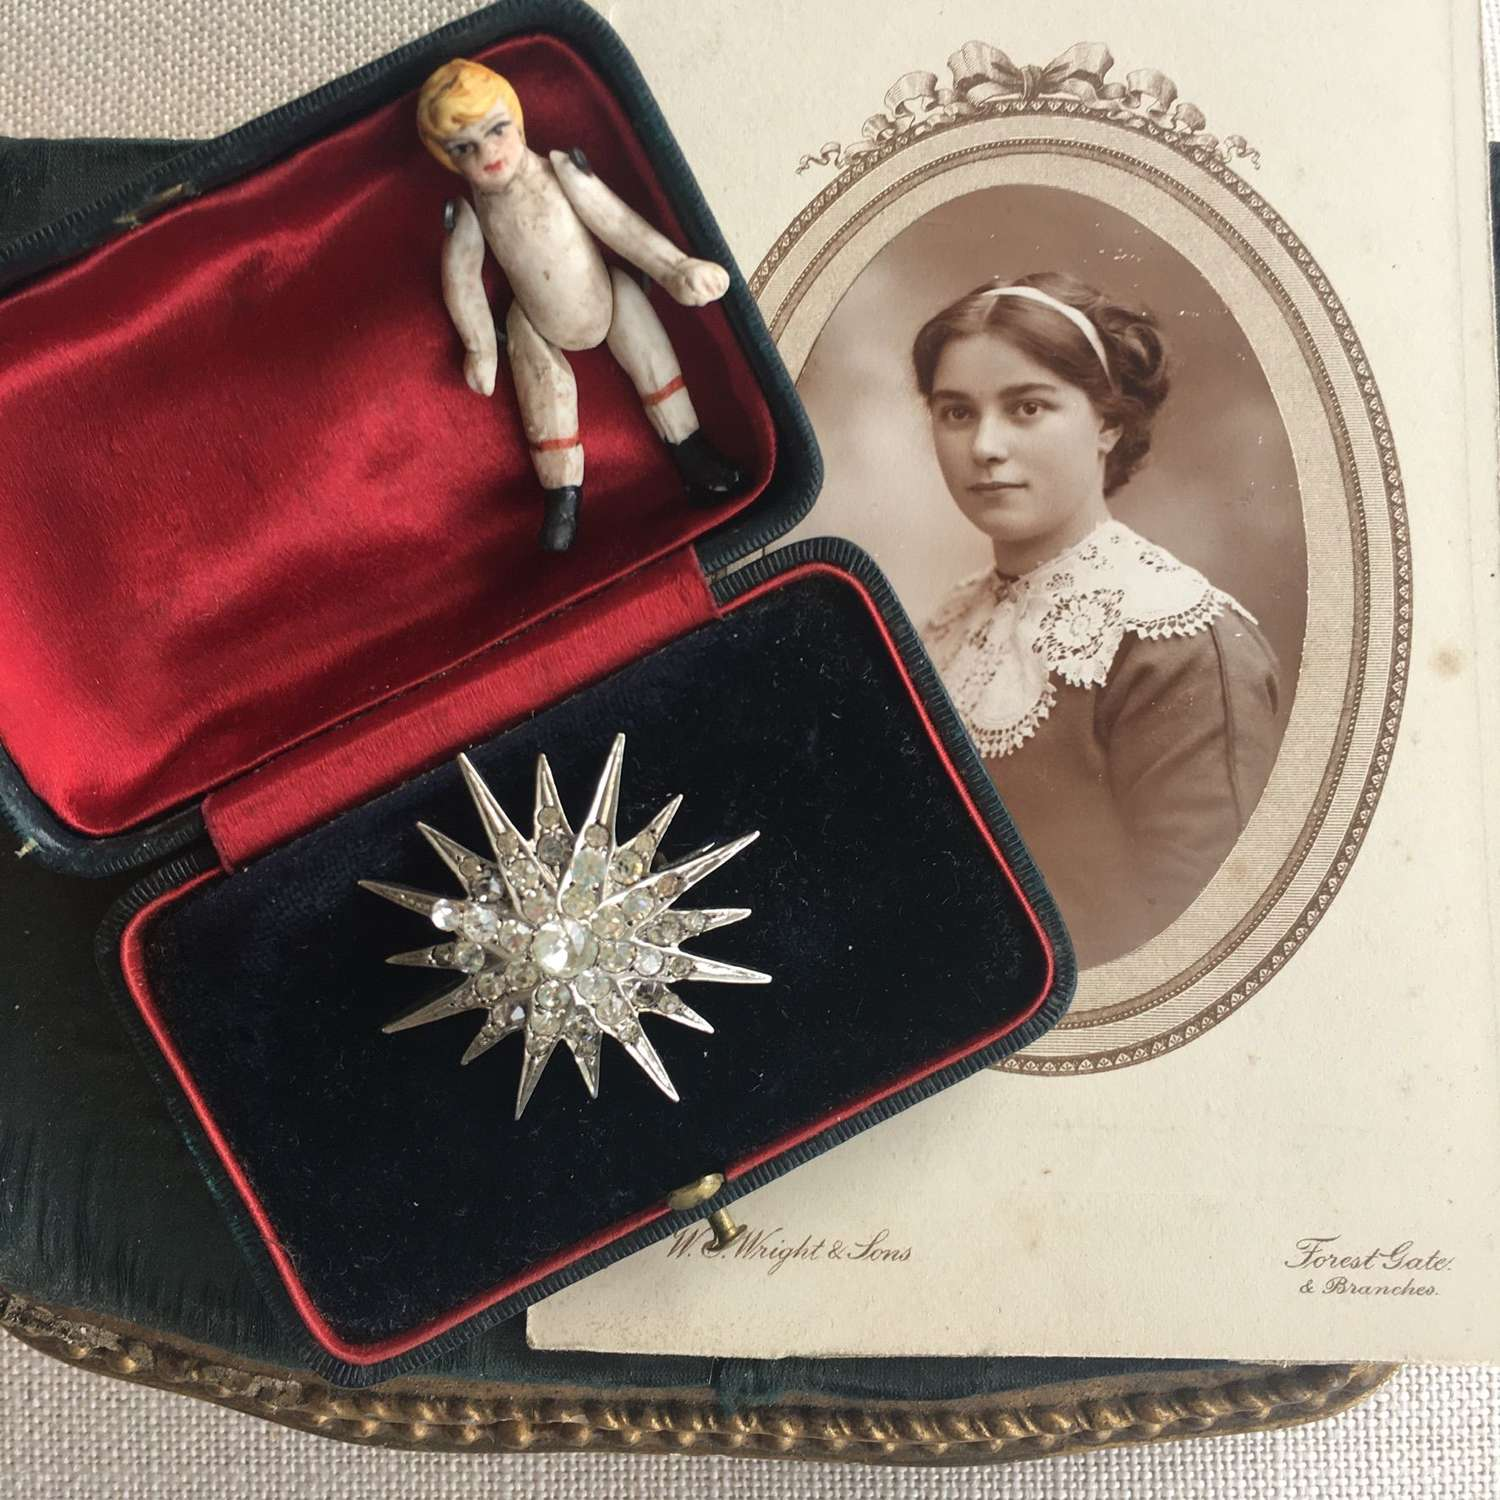 Silver and paste star brooch